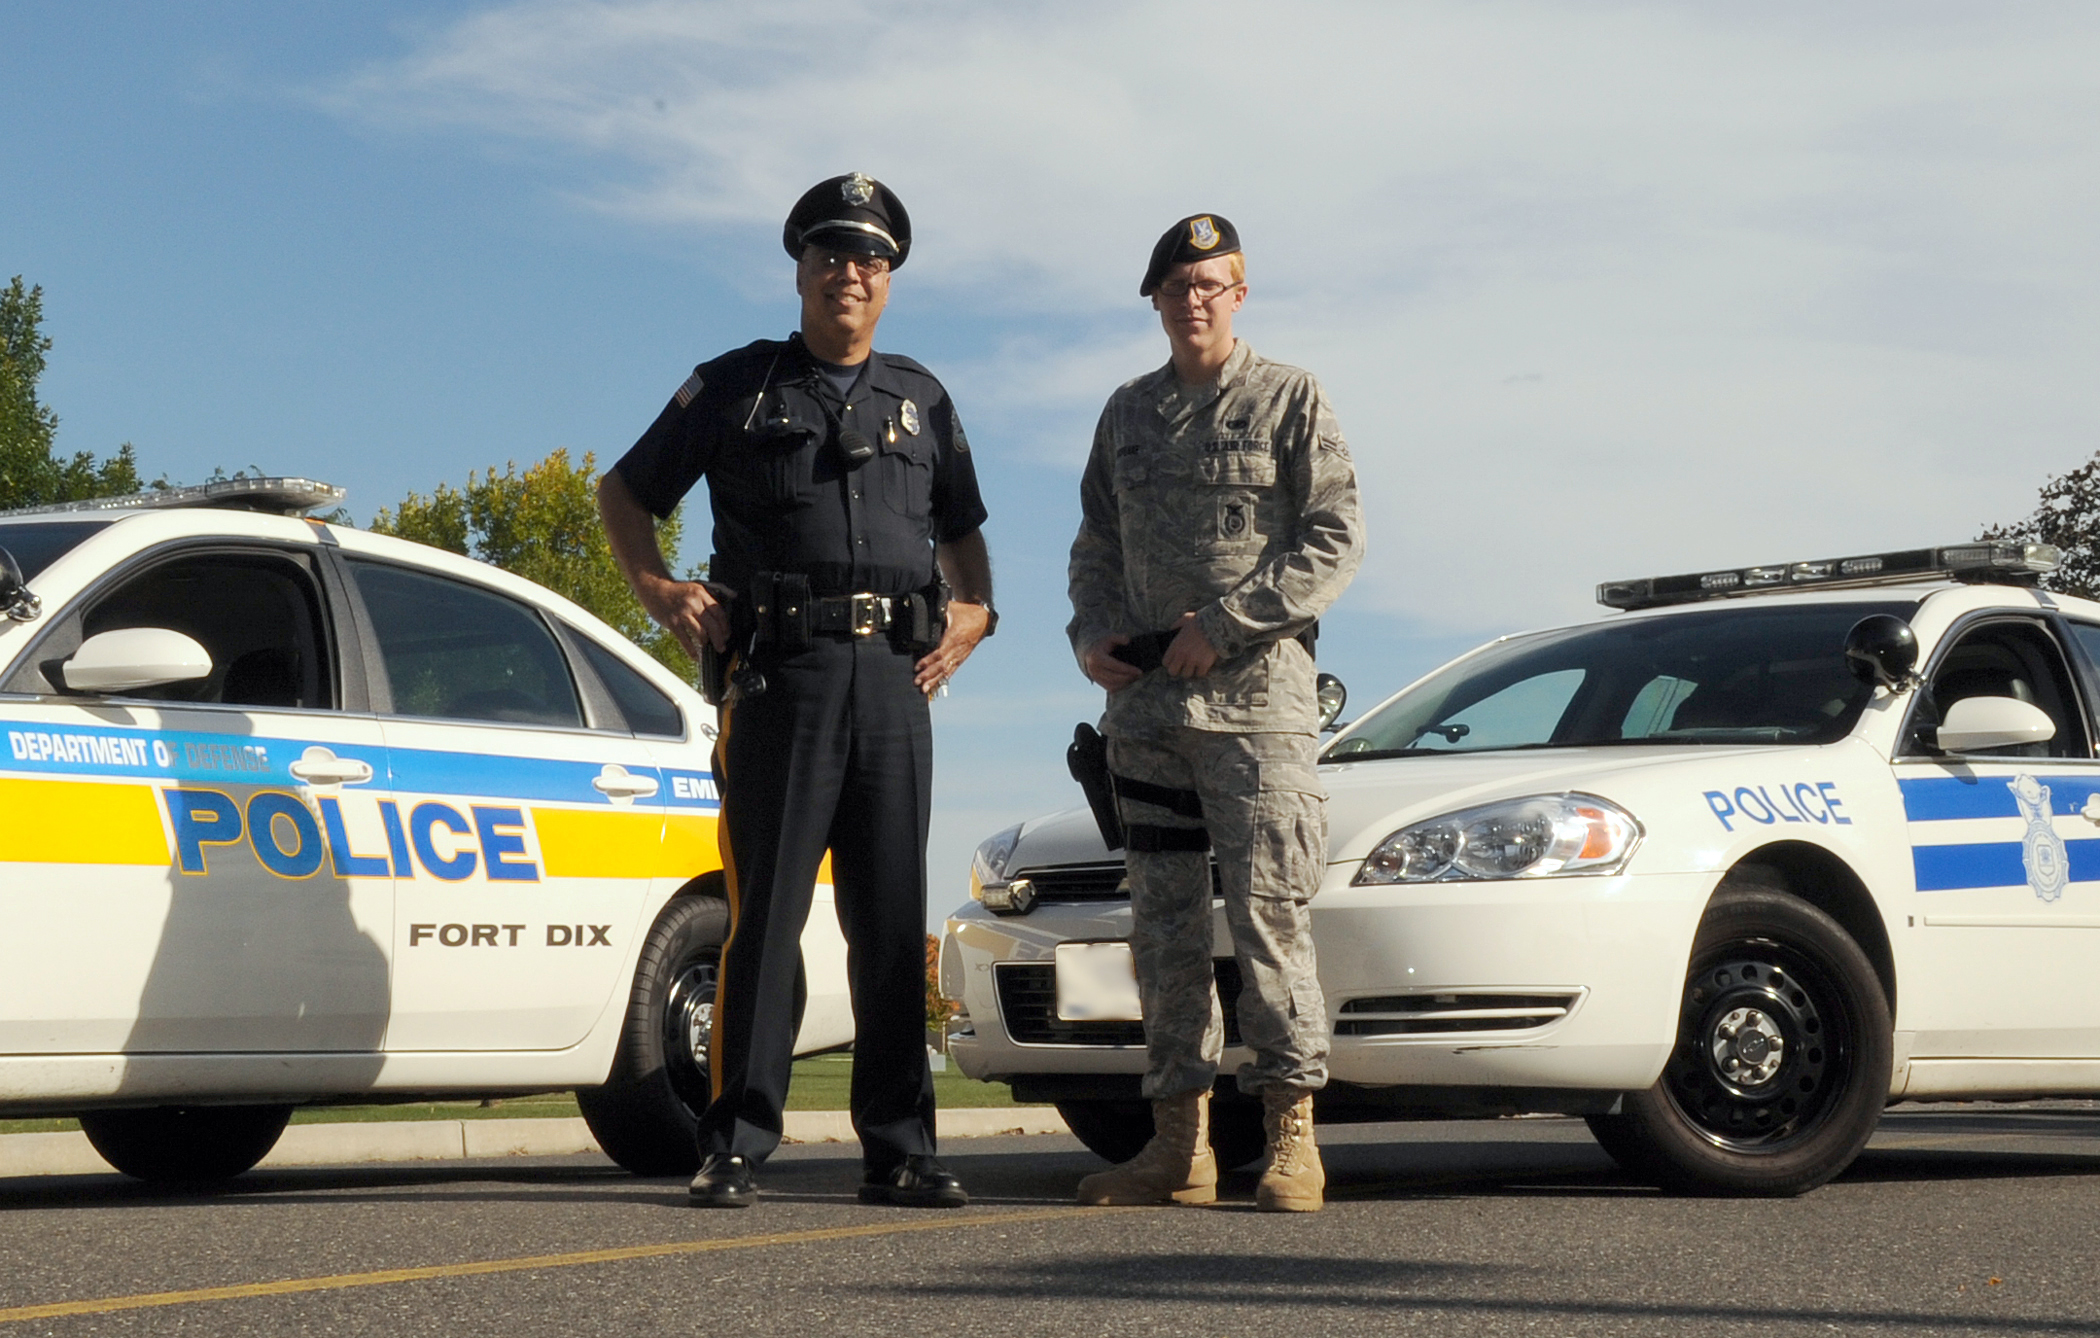 air force security forces dod police collaborate to keep joint base secure